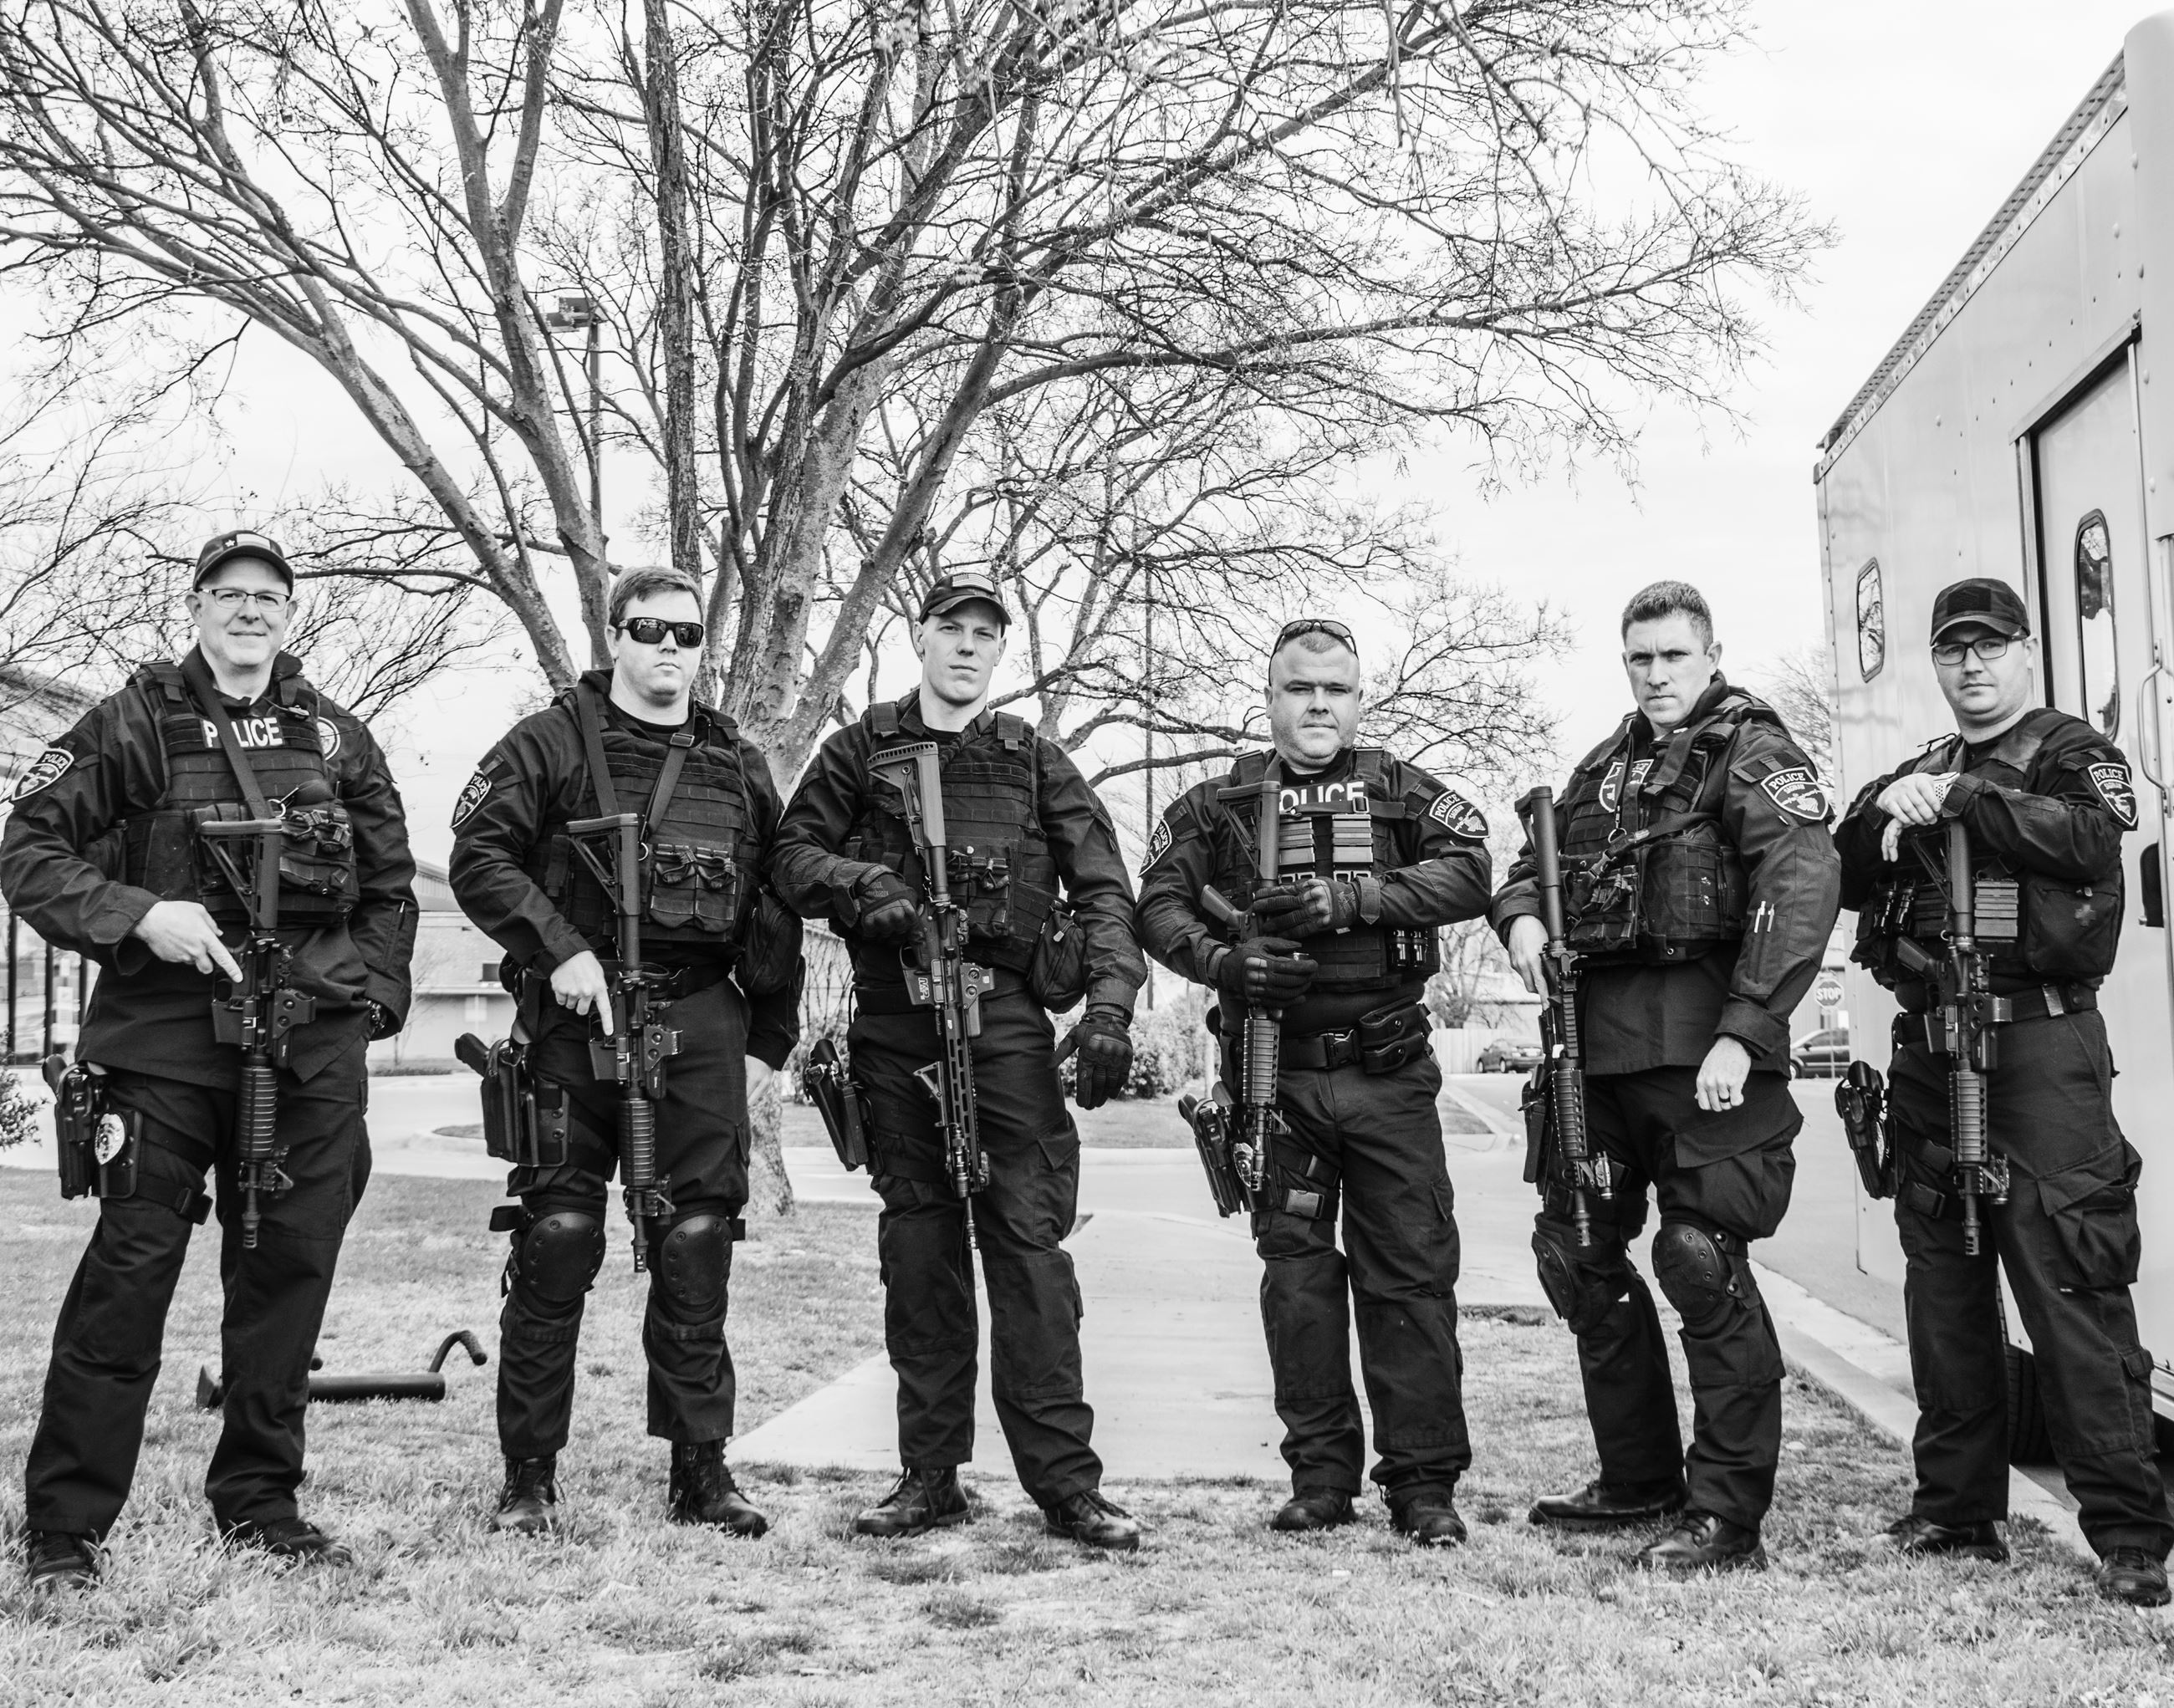 Saginaw Police SWAT 2